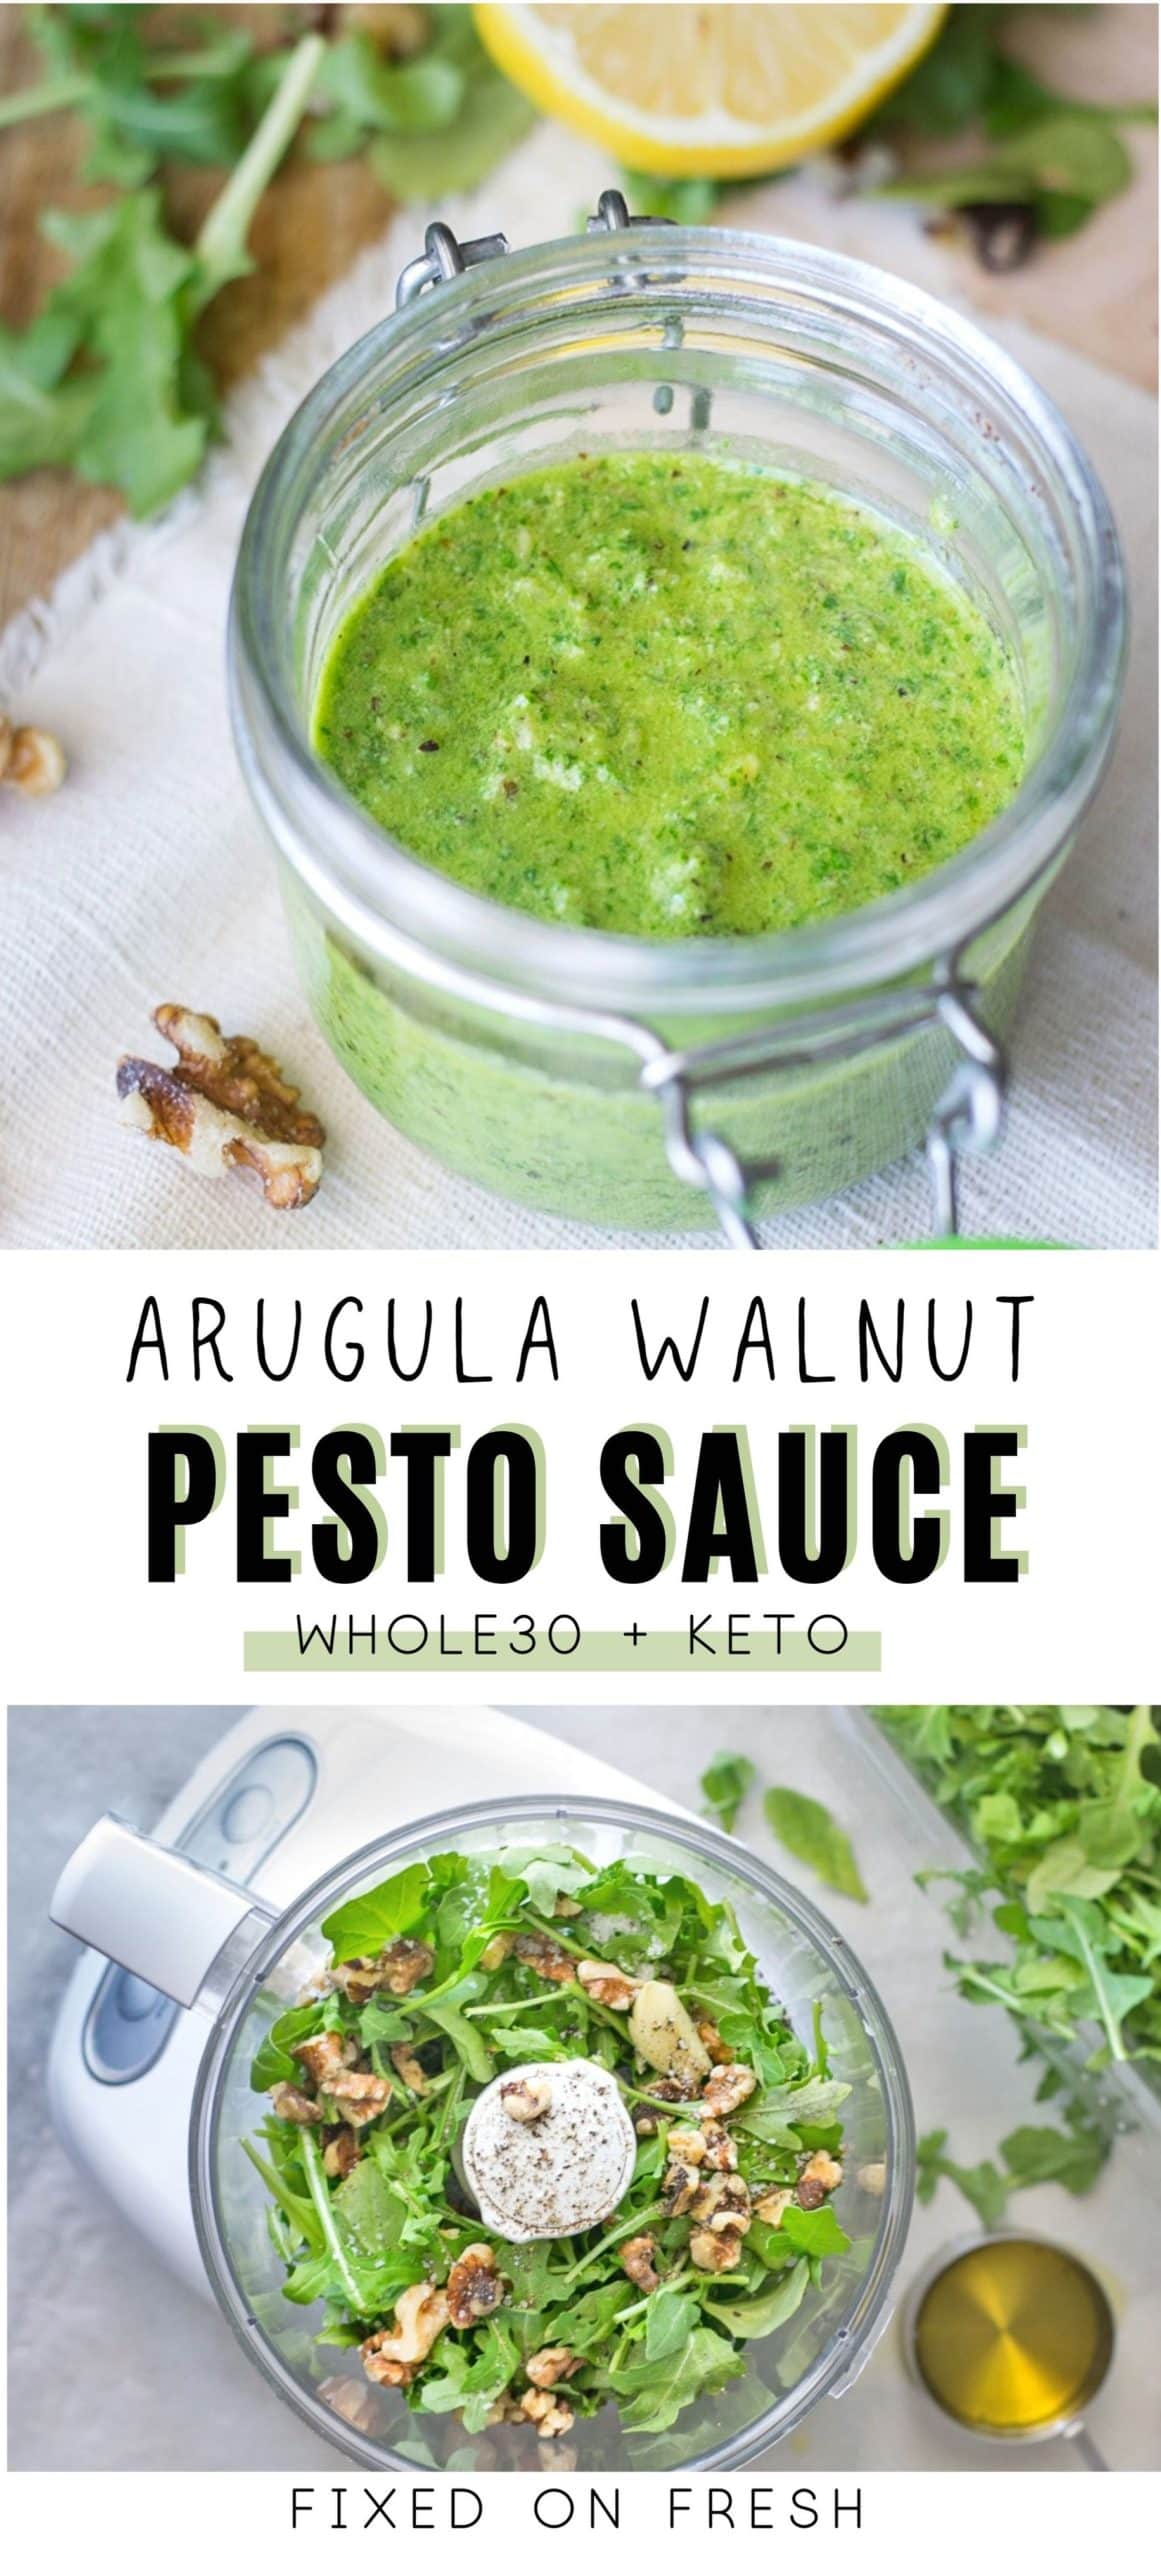 How to make arugula walnut pesto sauce in only 10 minutes. Arugula, toasted walnuts, lemon juice and olive oil all processed to make a delicious whole30 sauce for eggs, cauliflower, fish and chicken.